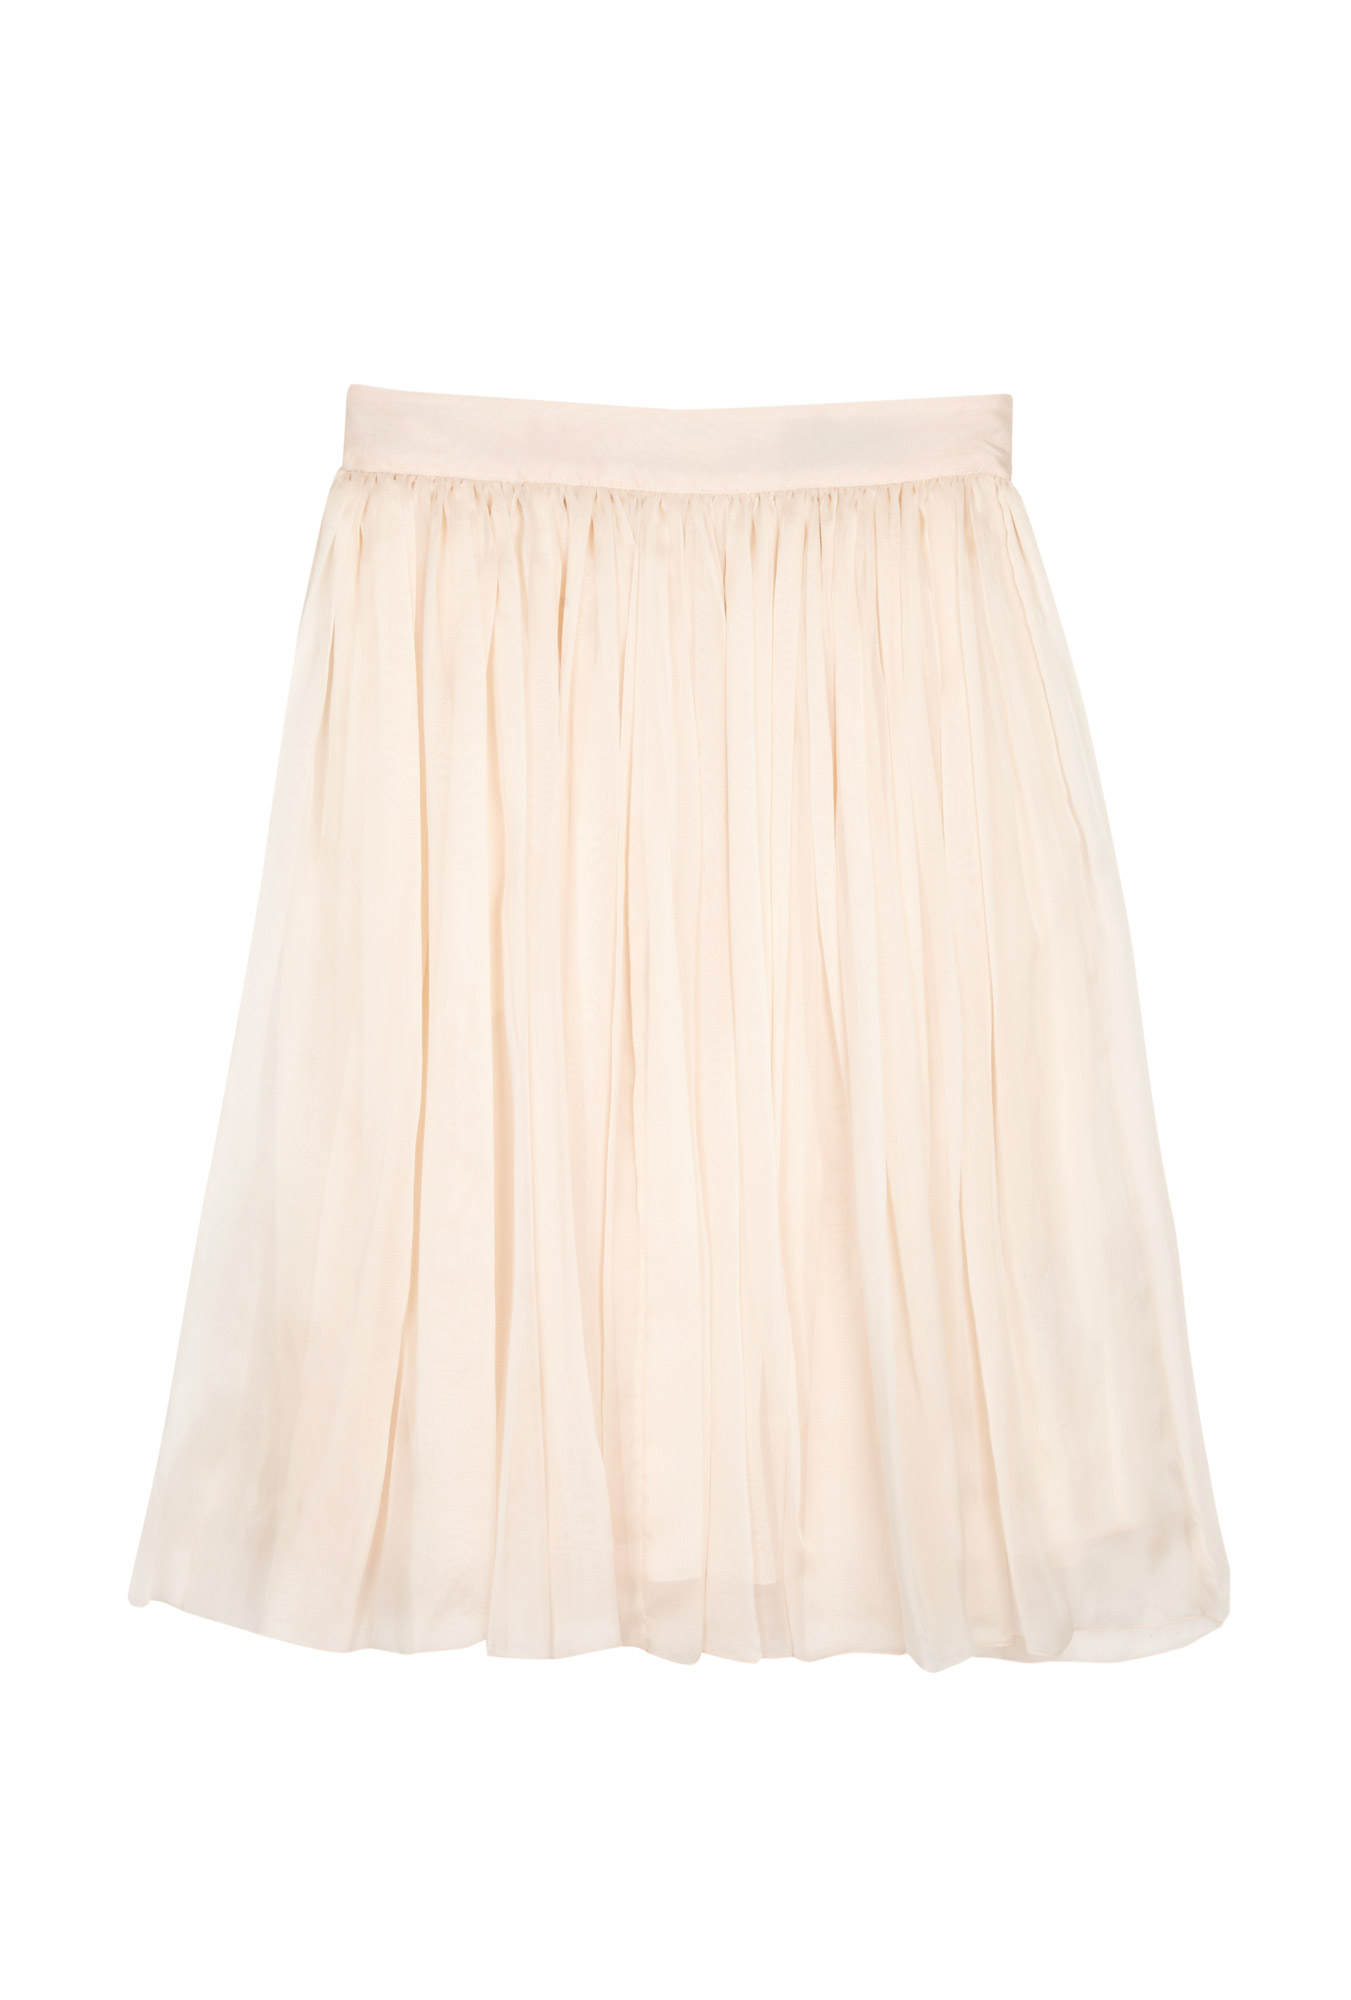 Blush hand ironed pleated skirt by d&g